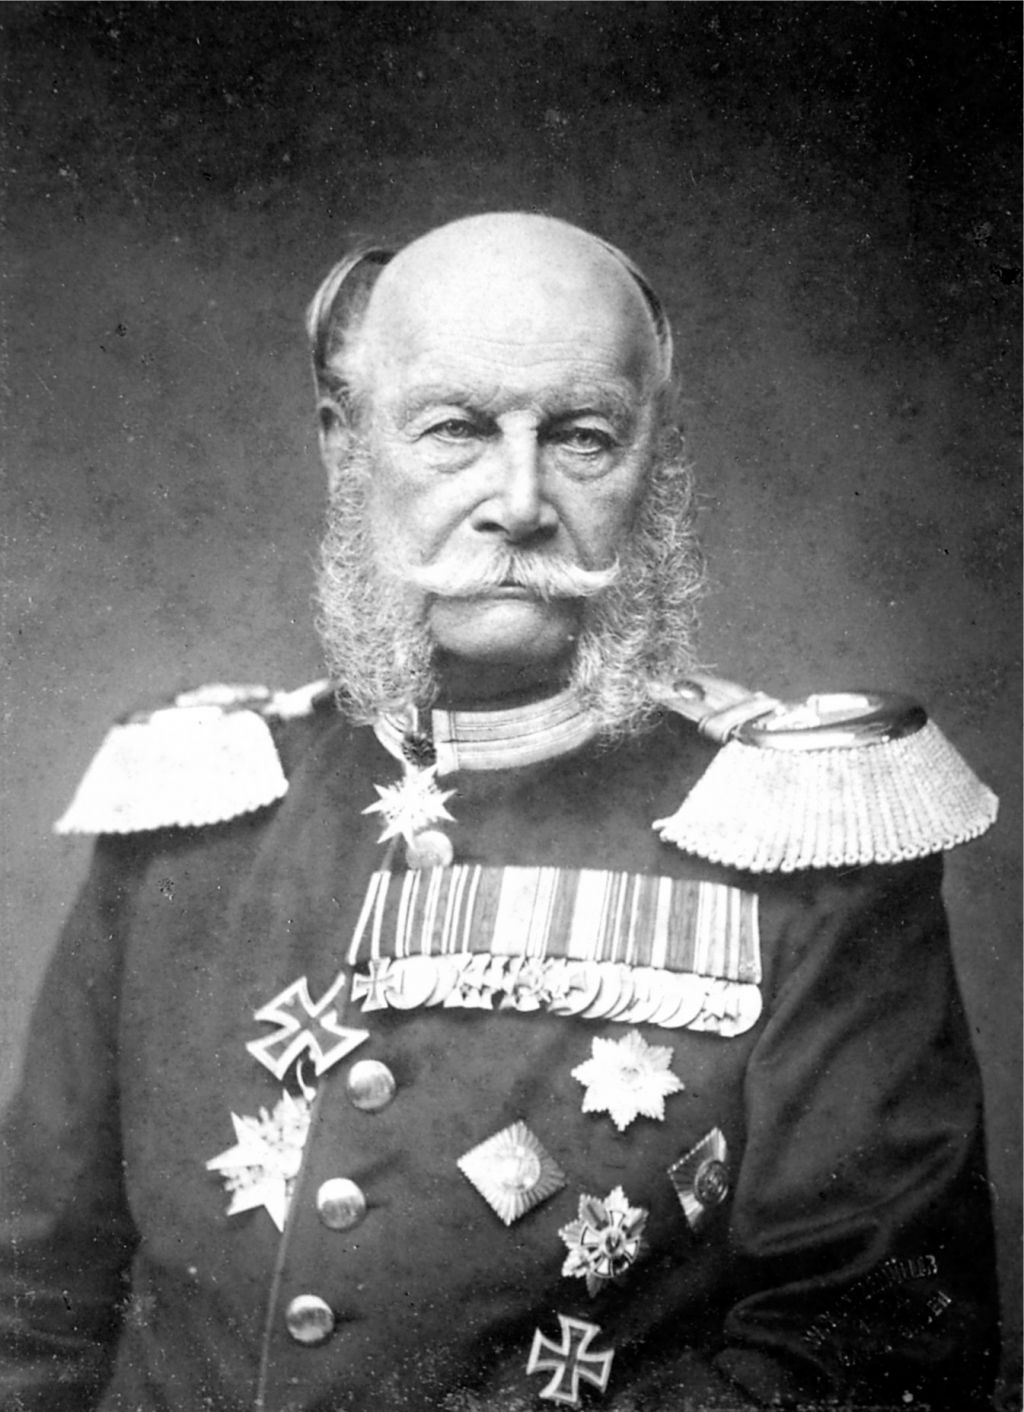 otto von bismarck of prussia essay The man who did most to unite the german states was otto von bismarck bismarck wanted to build up prussia's army in case his including past papers.